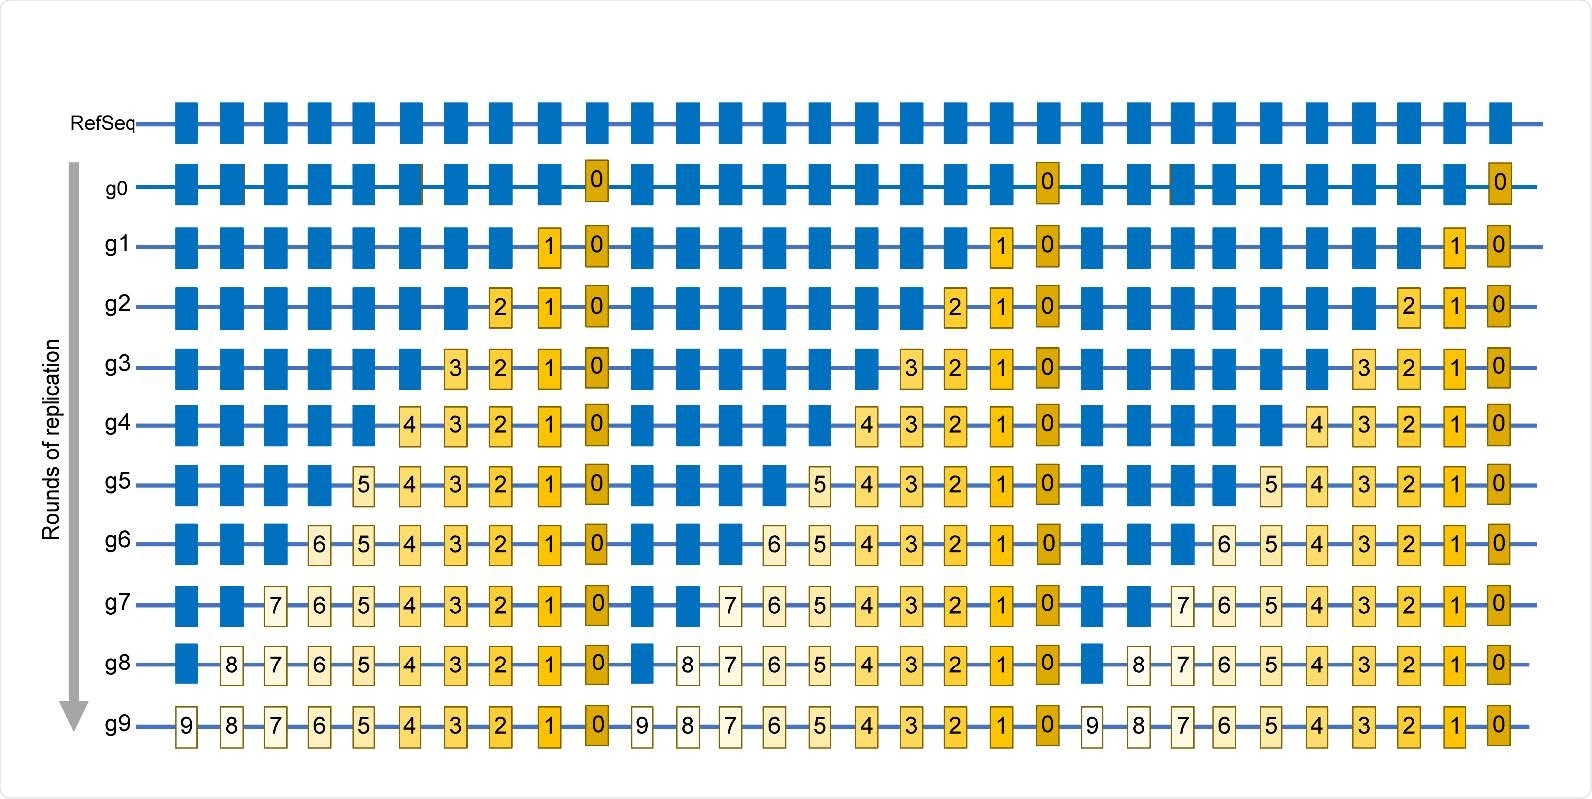 Simplified schematic of mutations accumulation in virus population. Mutations are identified by comparing a sequence of a viral isolate with a reference sequence (RefSeq). Positions in which mutations are found in at least one isolate are shown by rectangles. Blue rectangles are positions same as in RefSeq. g0 – A genome of virus quasispecies starting a population that may already have some differences from RefSeq. g1 – g9 rounds of replication generating additional mutations, which are numbered same as the generation in which a mutation event had occurred. Mutations occurring in later generations would be present in smaller fractions (reflected by the decreasing yellow color density) within the population. The entire set of independent mutation events would be described by the list in which every mutation is represented only once, regardless of the number of genomes where it is found. In this population, such a list is represented by the g9 genome.